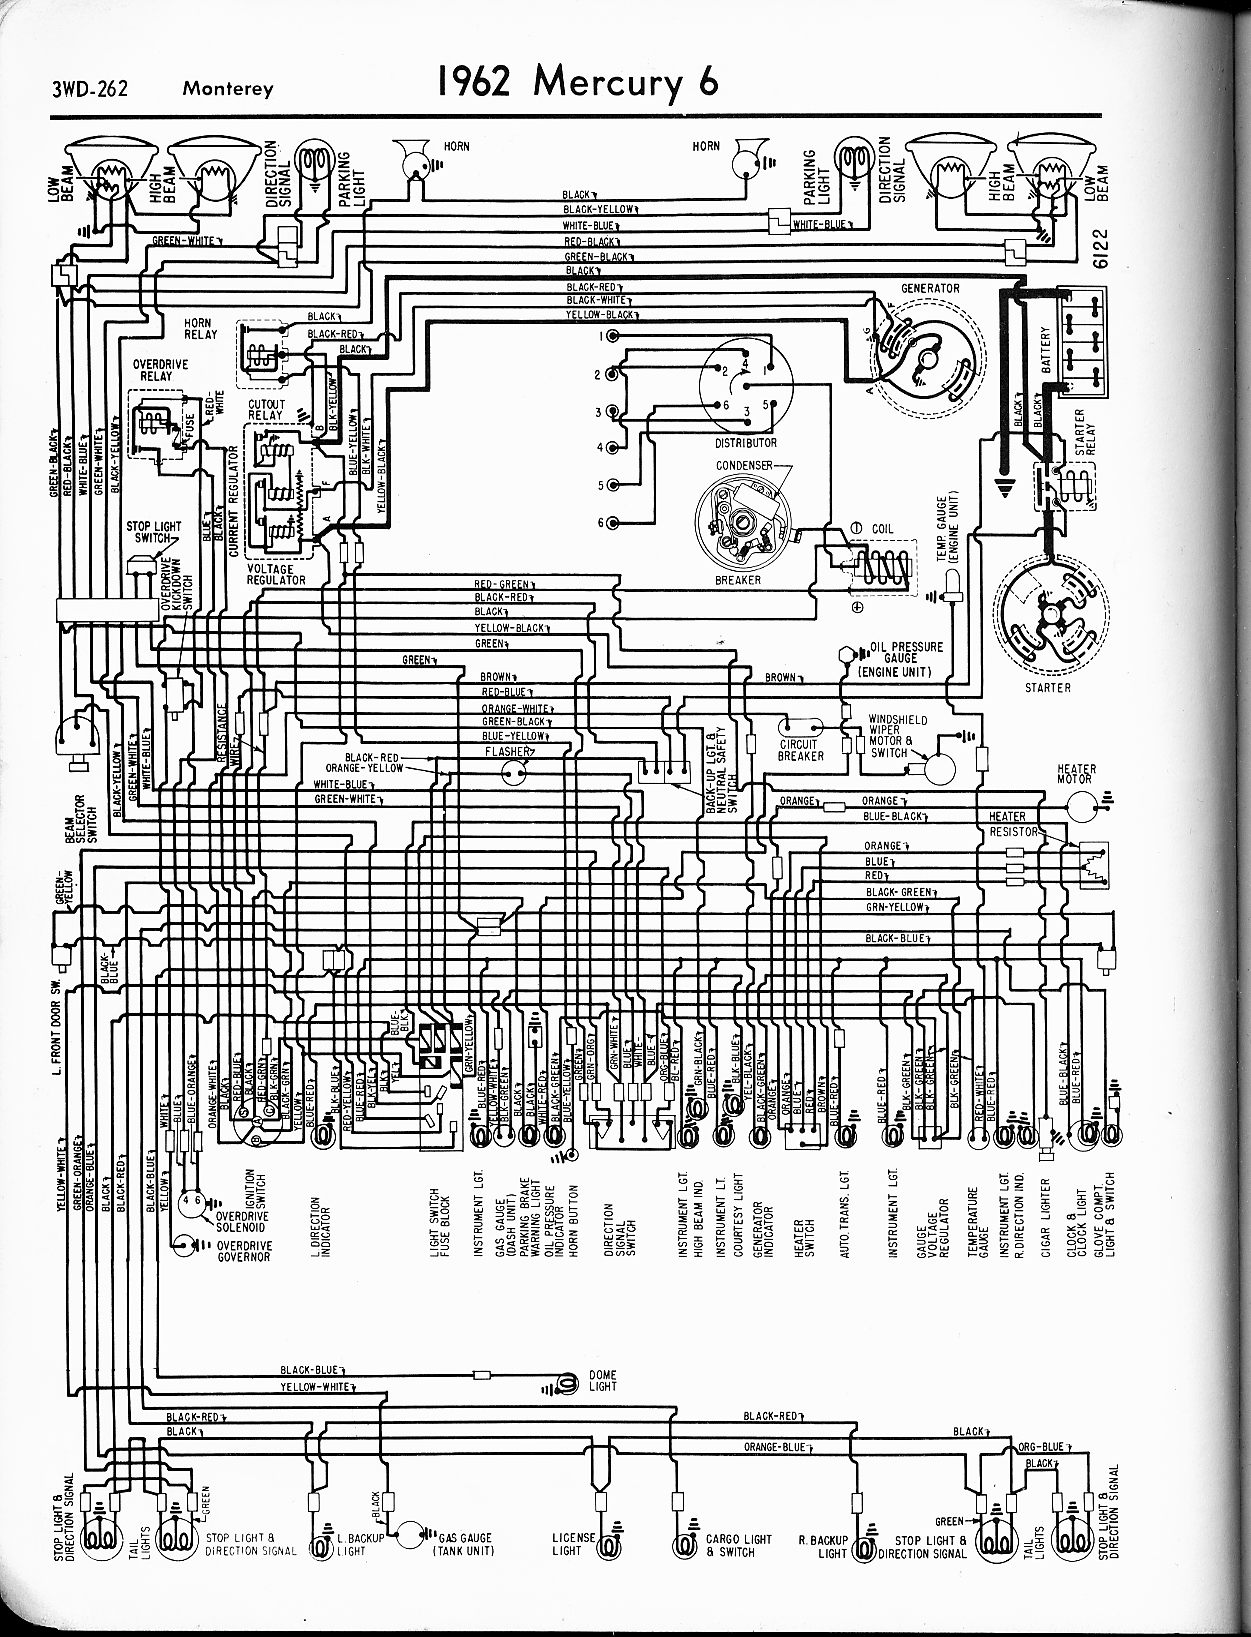 [DIAGRAM_1JK]  1956 Thunderbird Wiring Diagram Pdf | Wiring Diagram | 1966 Corvette Wiring Diagram Pdf |  | Wiring Diagram - AutoScout24